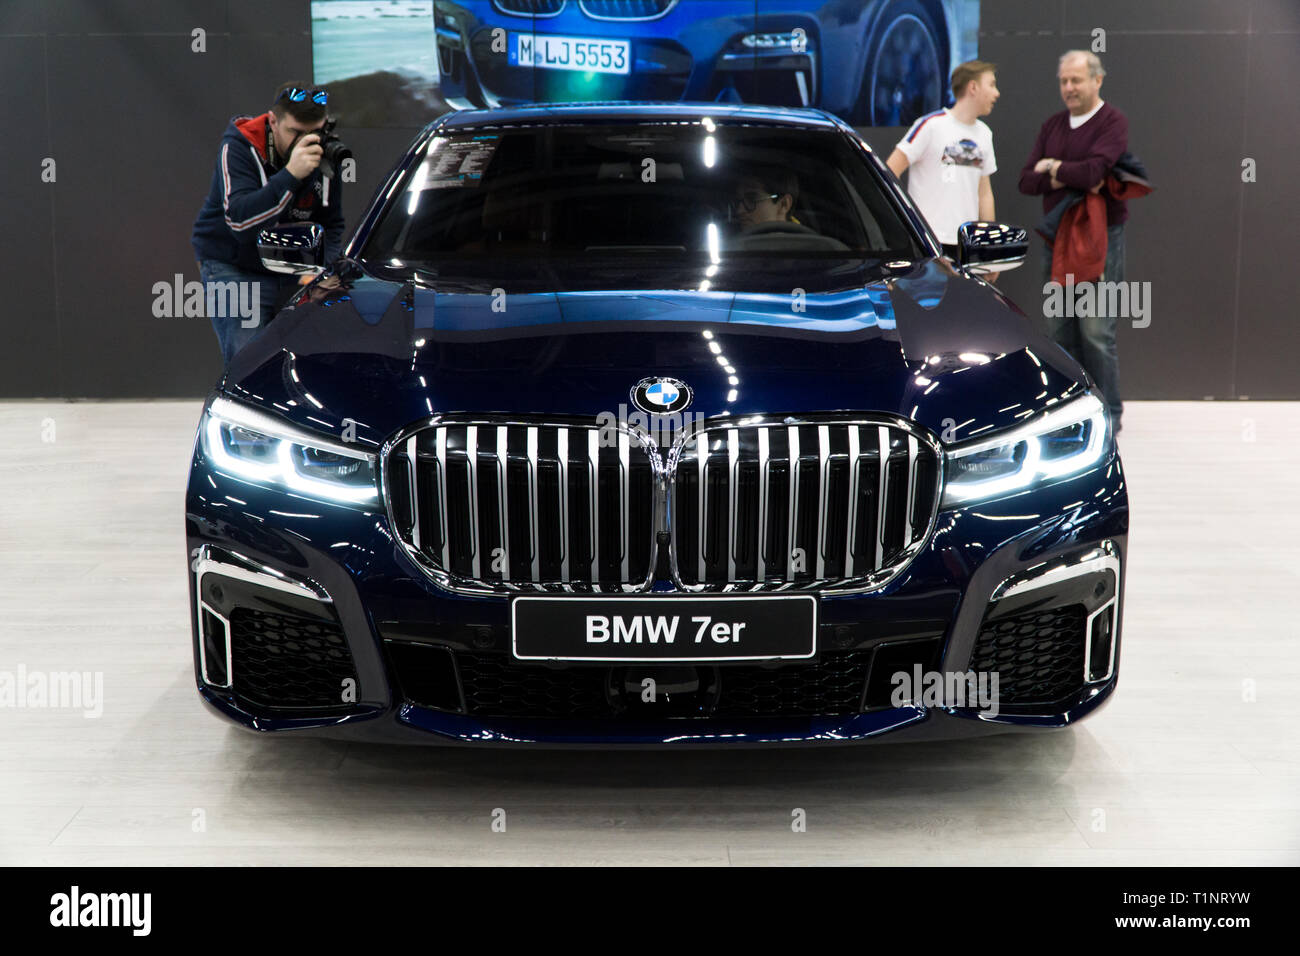 New Bmw 7 Series Stock Photos New Bmw 7 Series Stock Images Alamy